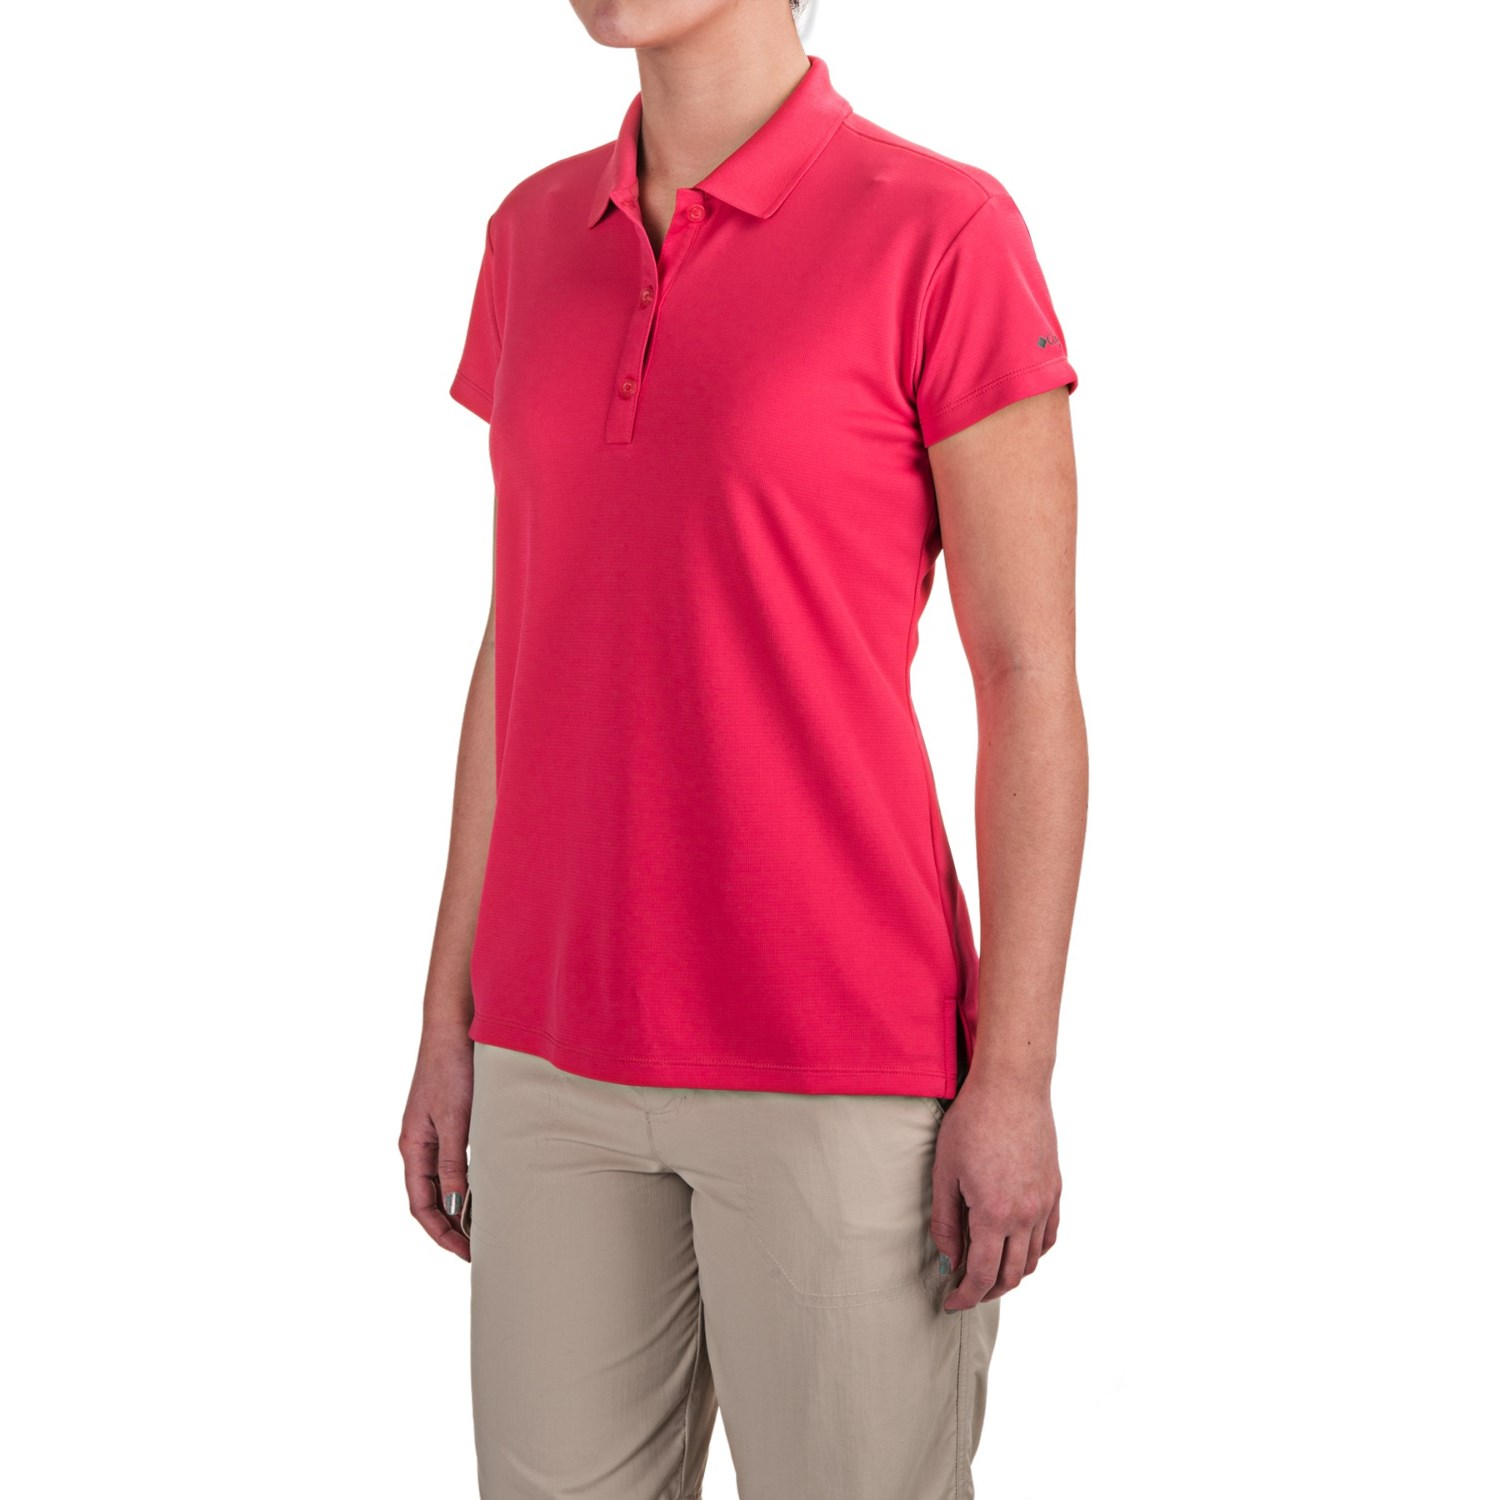 Columbia sportswear pfg innisfree polo shirt for women for Columbia shirts womens pfg